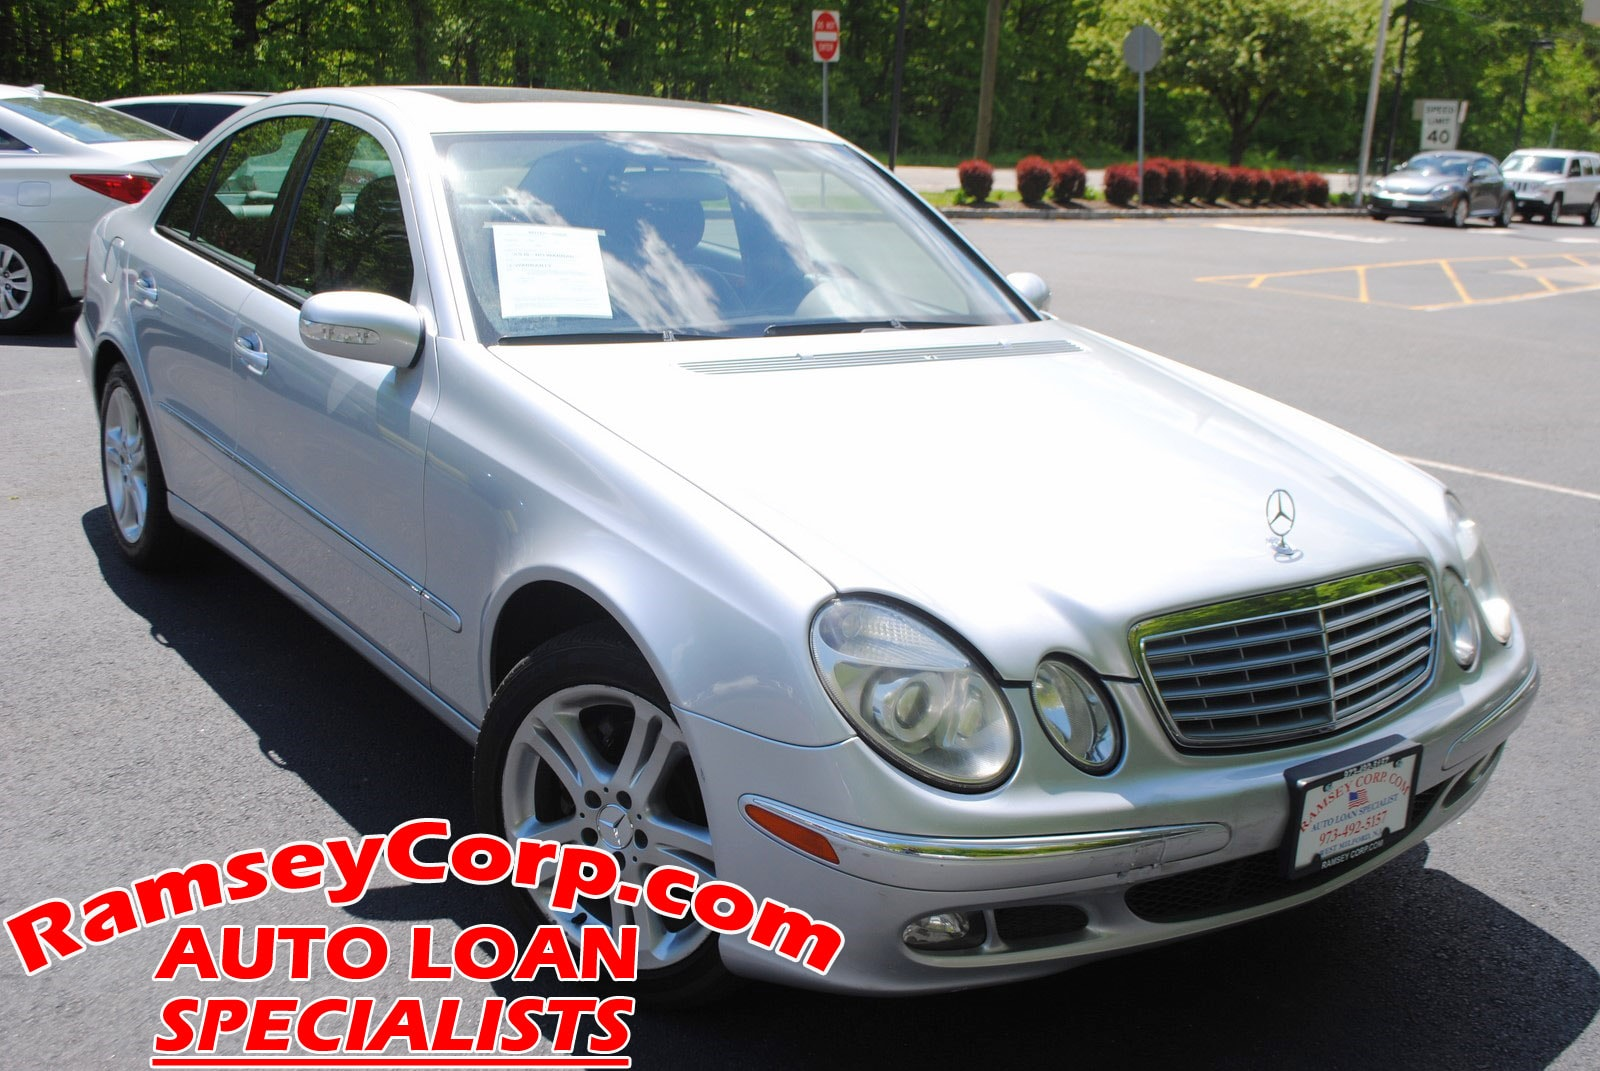 Used 2006 Mercedes-Benz E-Class For Sale at Ramsey Corp